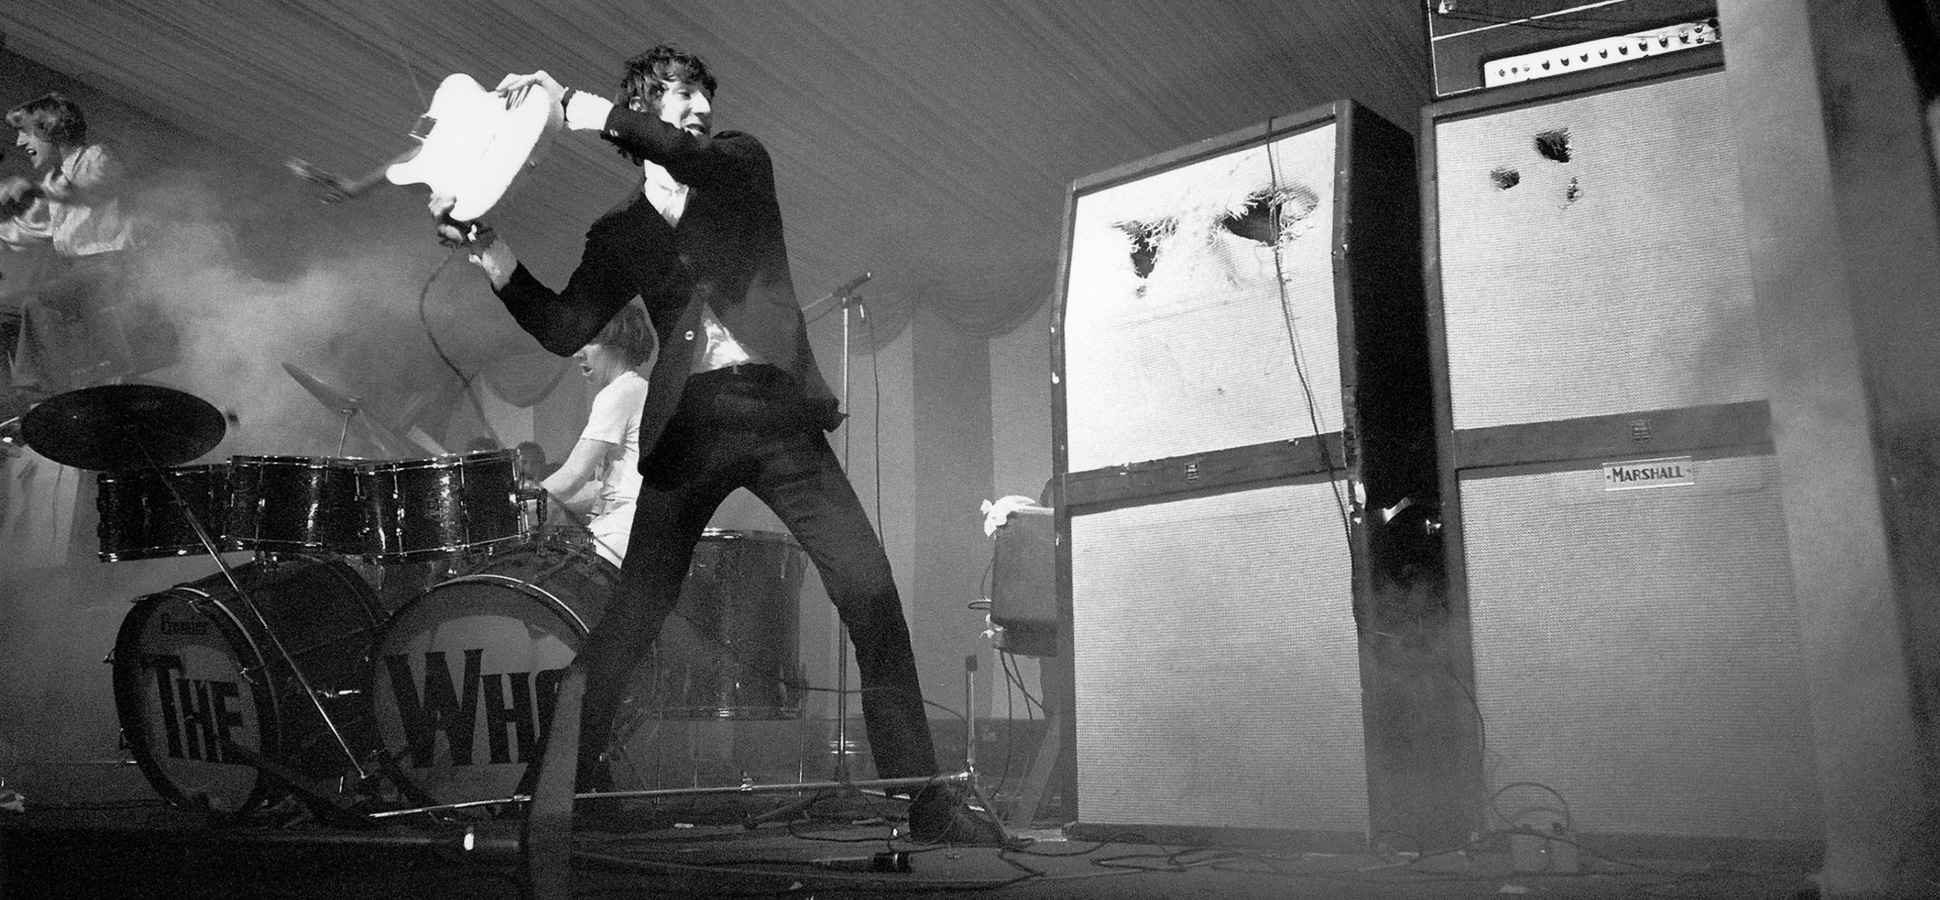 pete-townshend-the-who-smashing-guitar-1940x900_36655